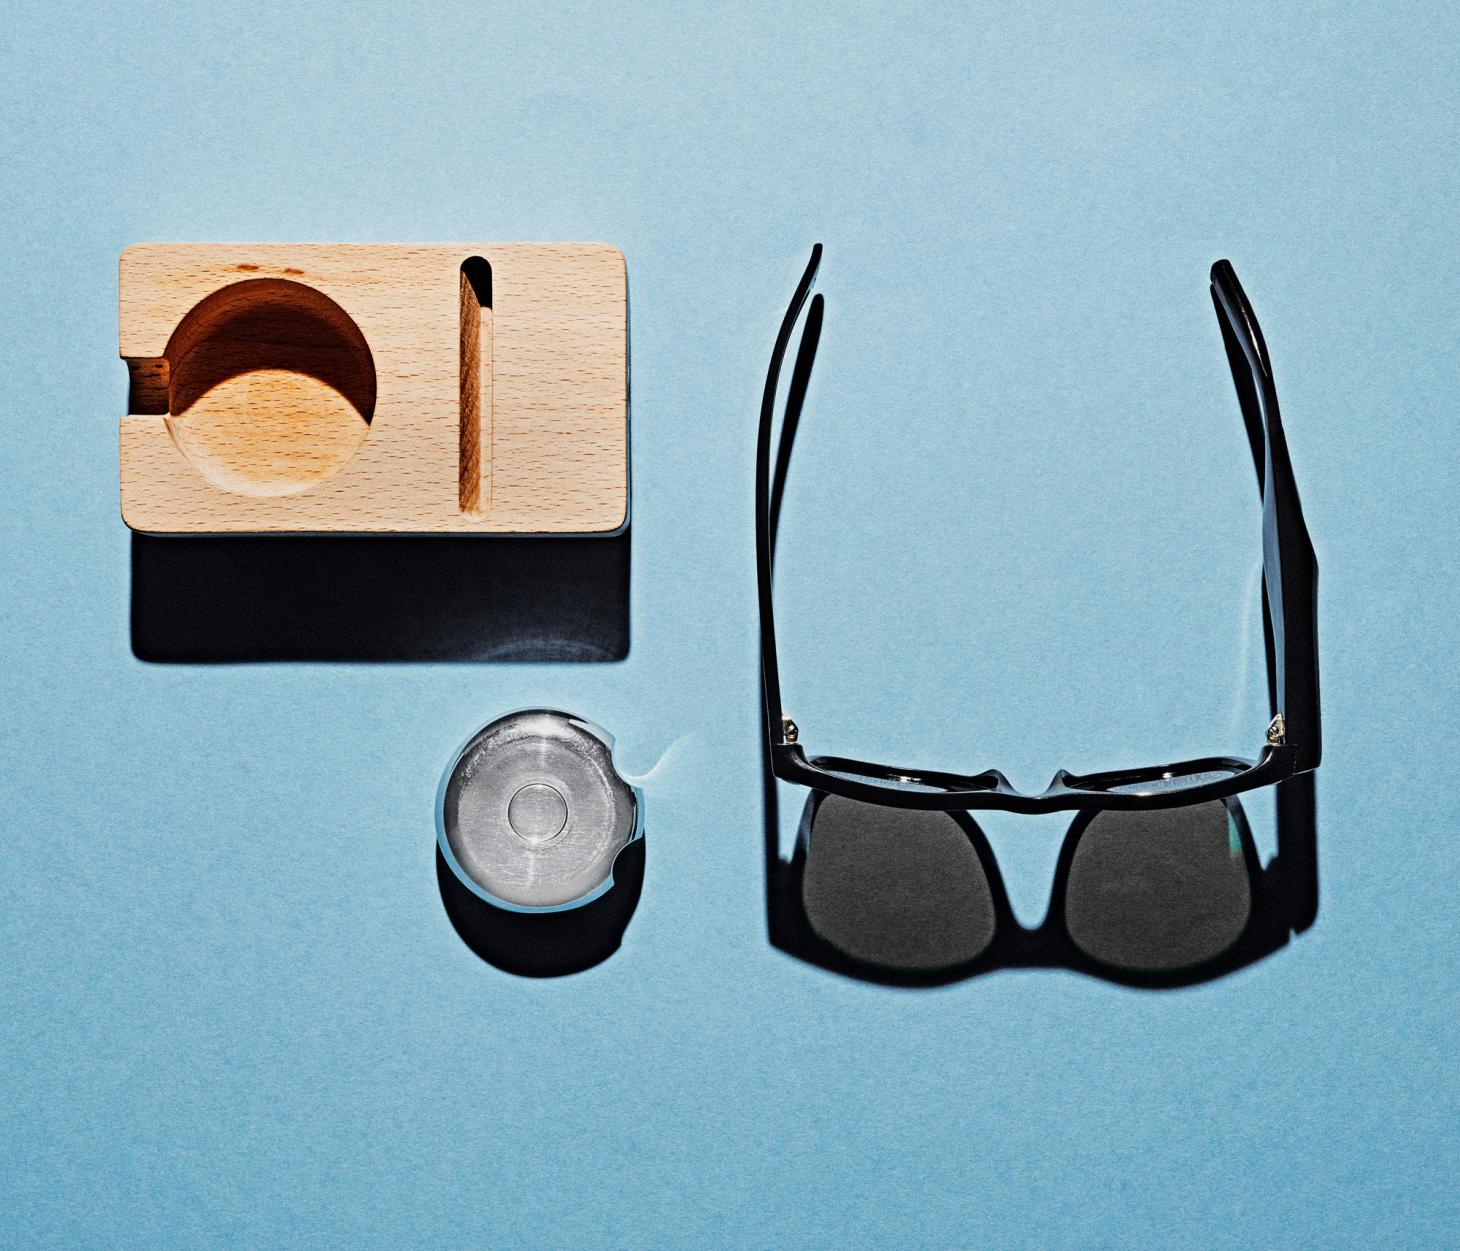 wooden holder, a vibrating silver bean-shaped nugget and a pair of sunglasses